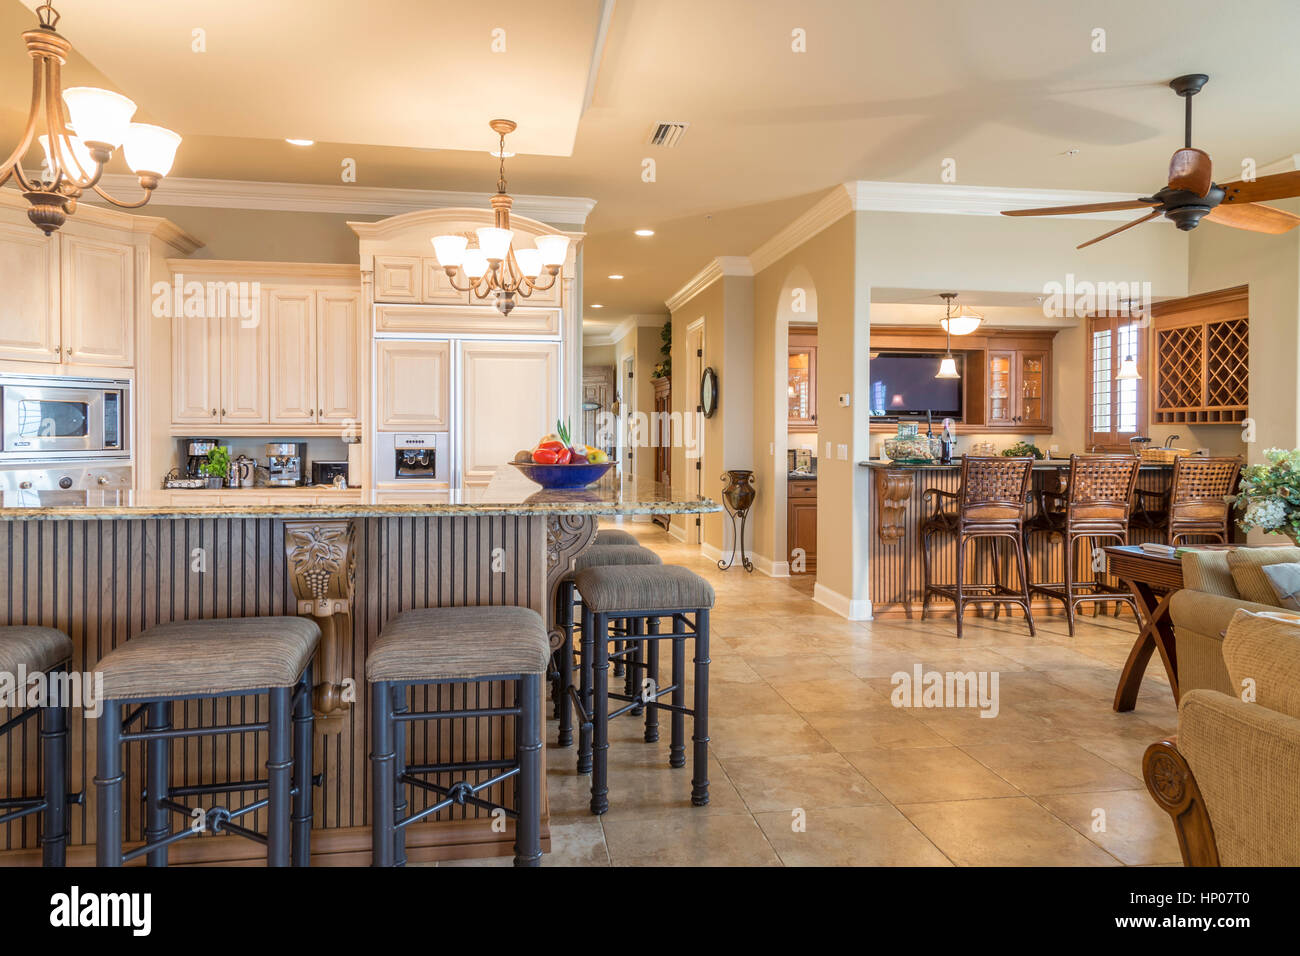 Huge Condo with Showcase Kitchen and Bar Area In Luxury Great Room ...